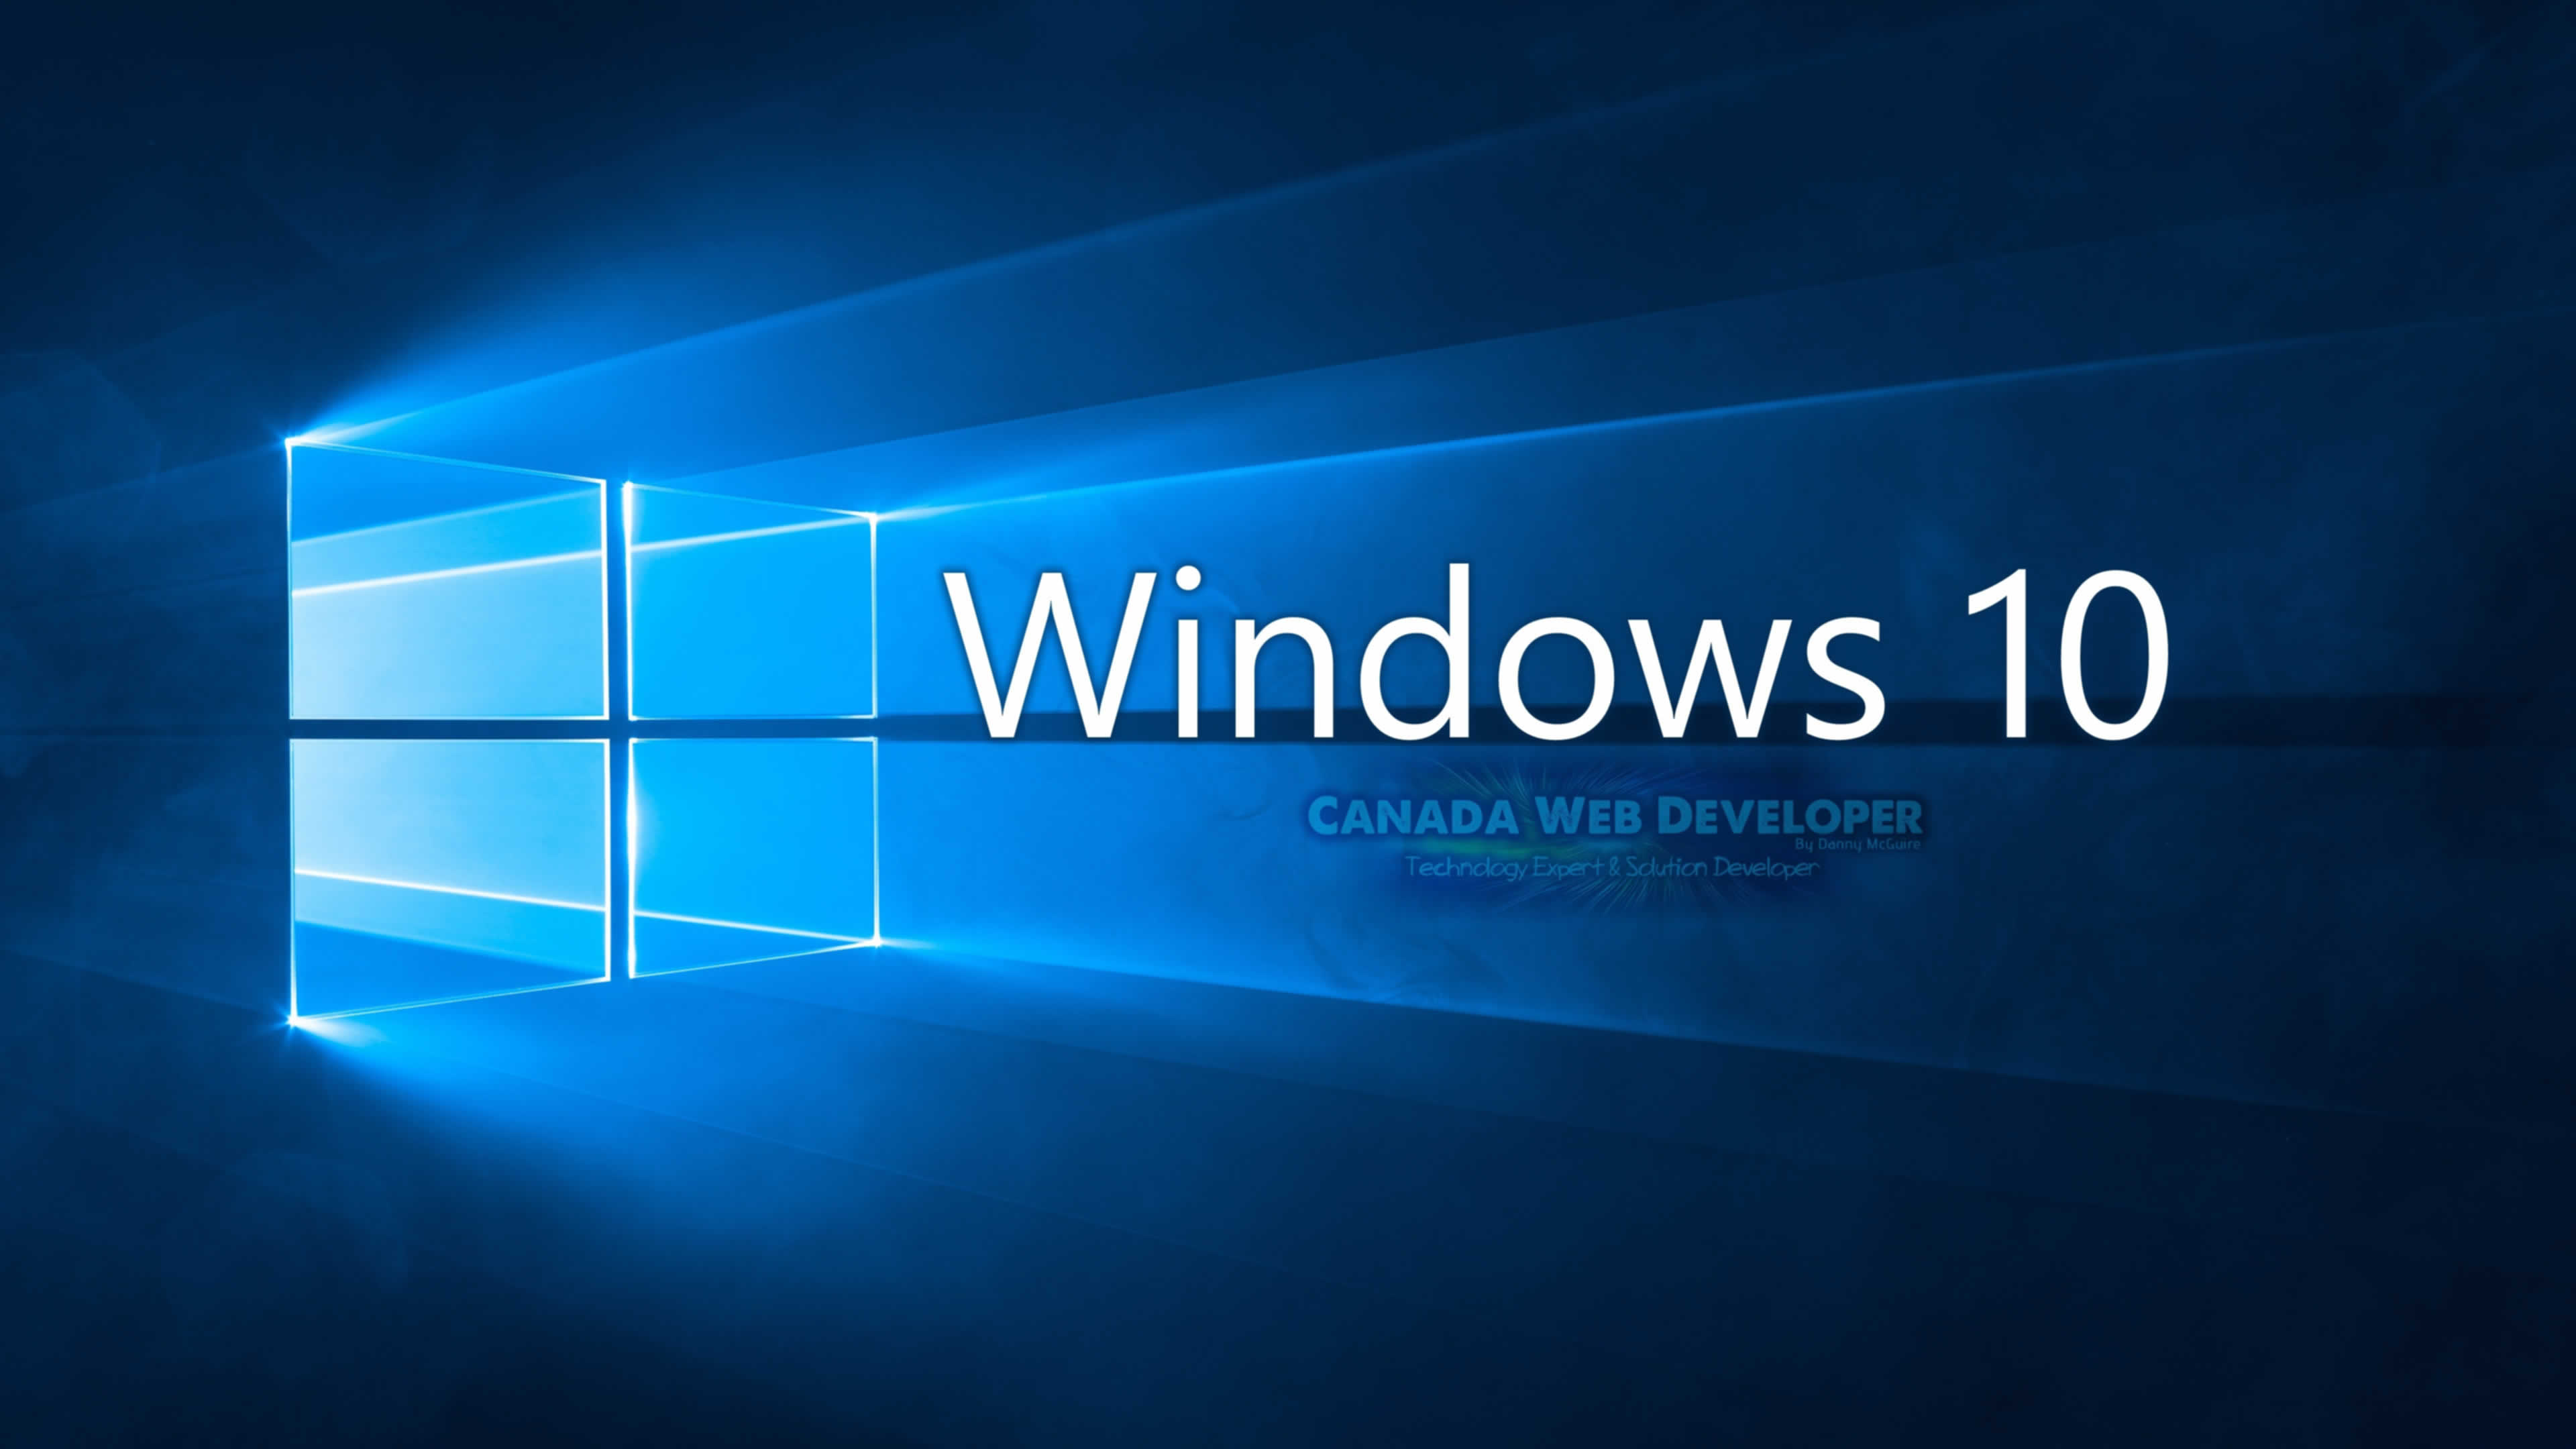 Windows 10 lock screen wallpaper wallpapersafari for Wallpaper home and lock screen